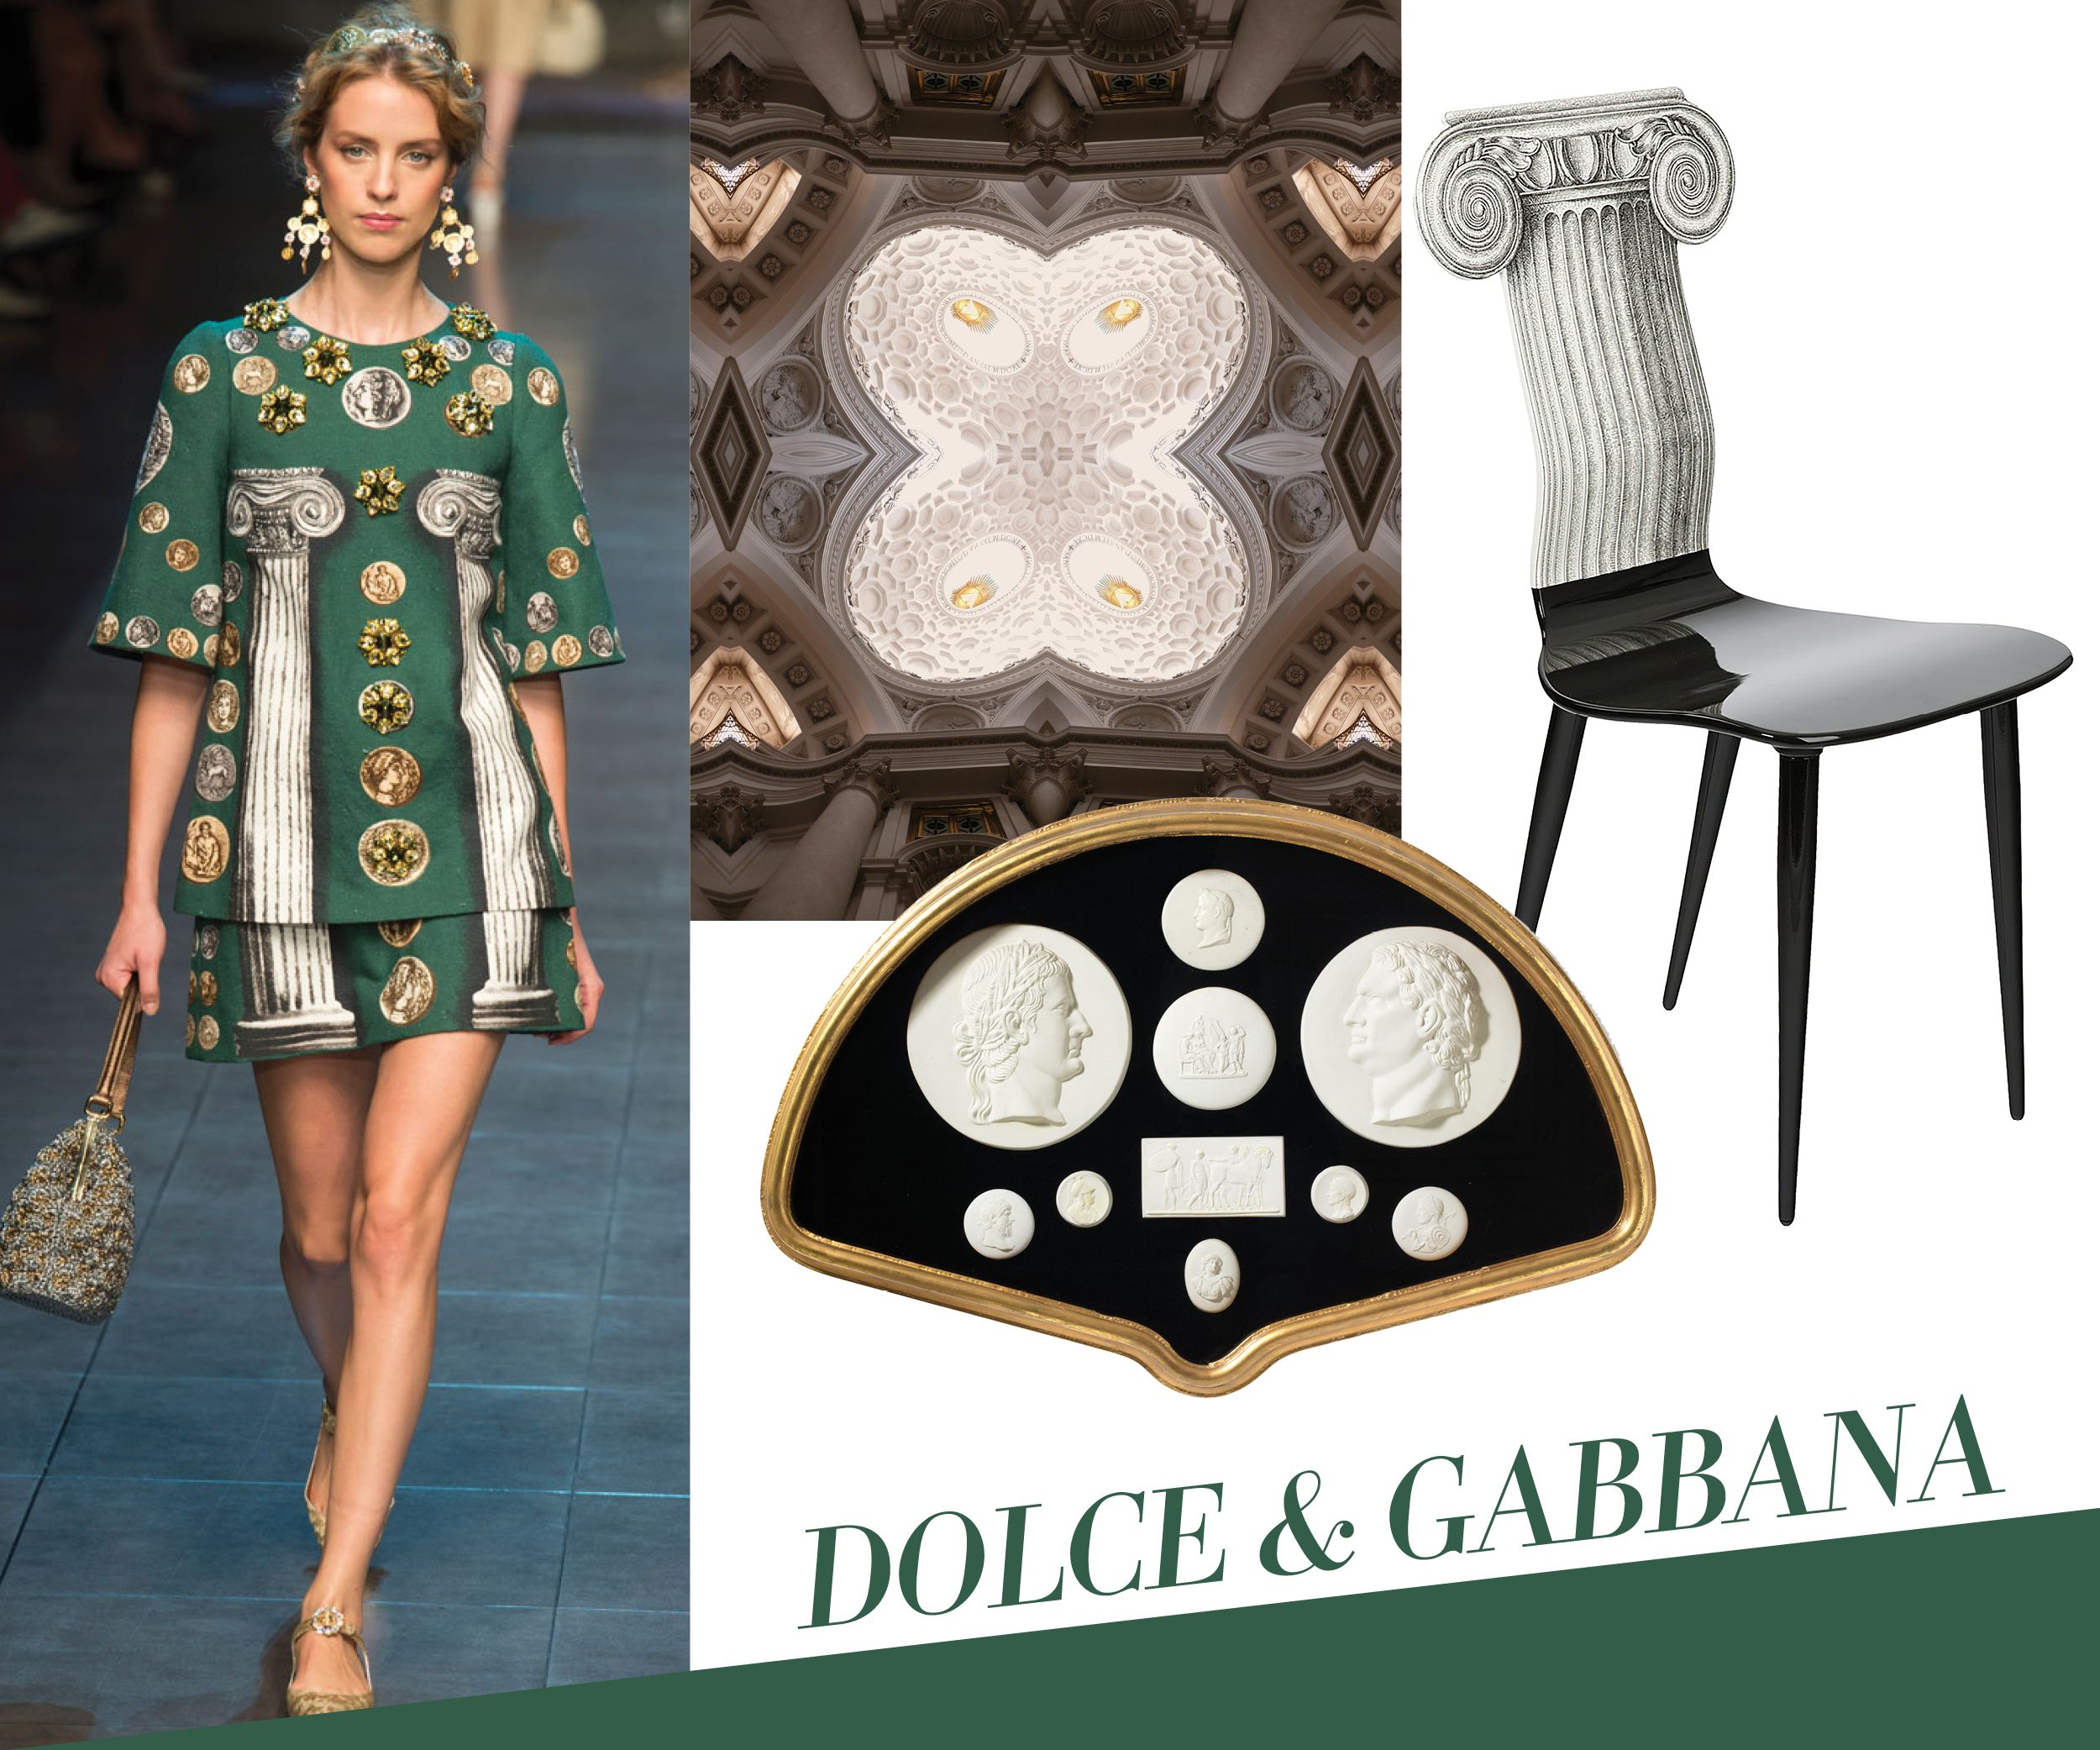 Dolce & Gabbana's photorealistic and painterly interpretations of classical Roman and Grecian architecture playfully manipulate scale and form, a signature of the late designer Piero Fornasetti and now his son, Barnaba. David Nosanchuk's background in architecture comes through in his debut collection of wallpapers, which launched this week, featuring repeating photographic slices of famous Roman landmarks. Collectors of the Neoclassical can't resist mounted nineteenth-century Grand Tour ...